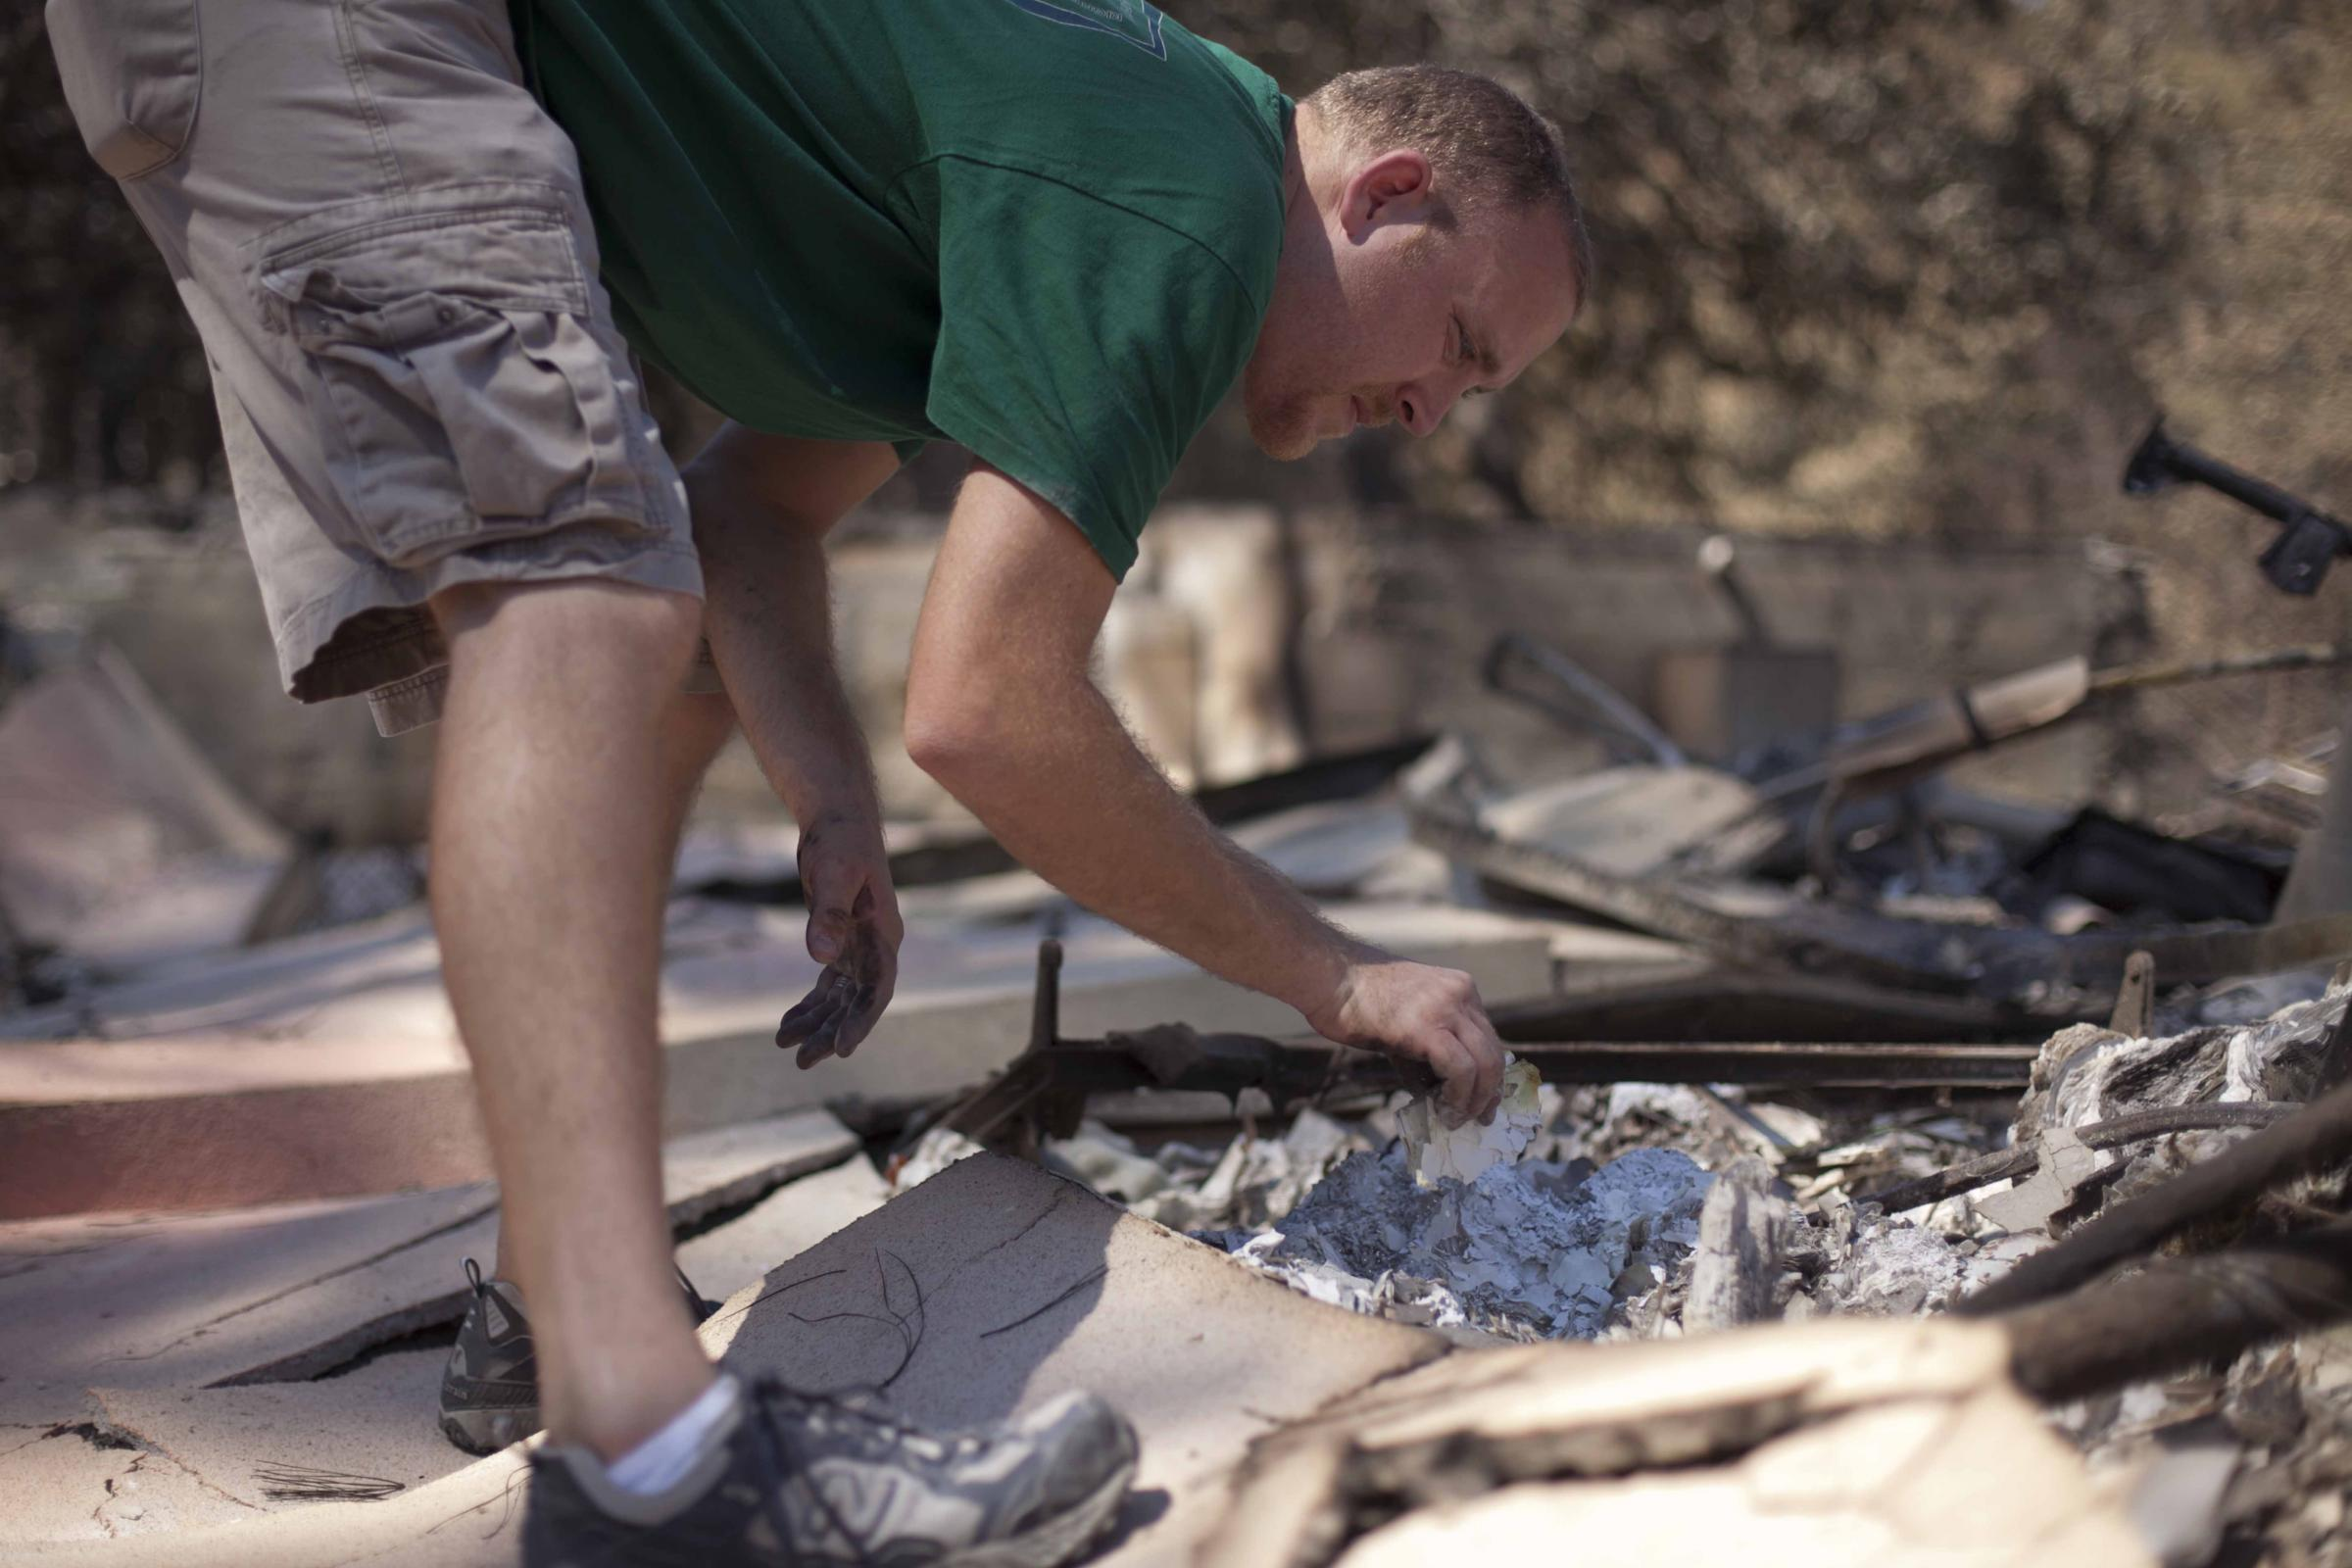 sifting through burned house